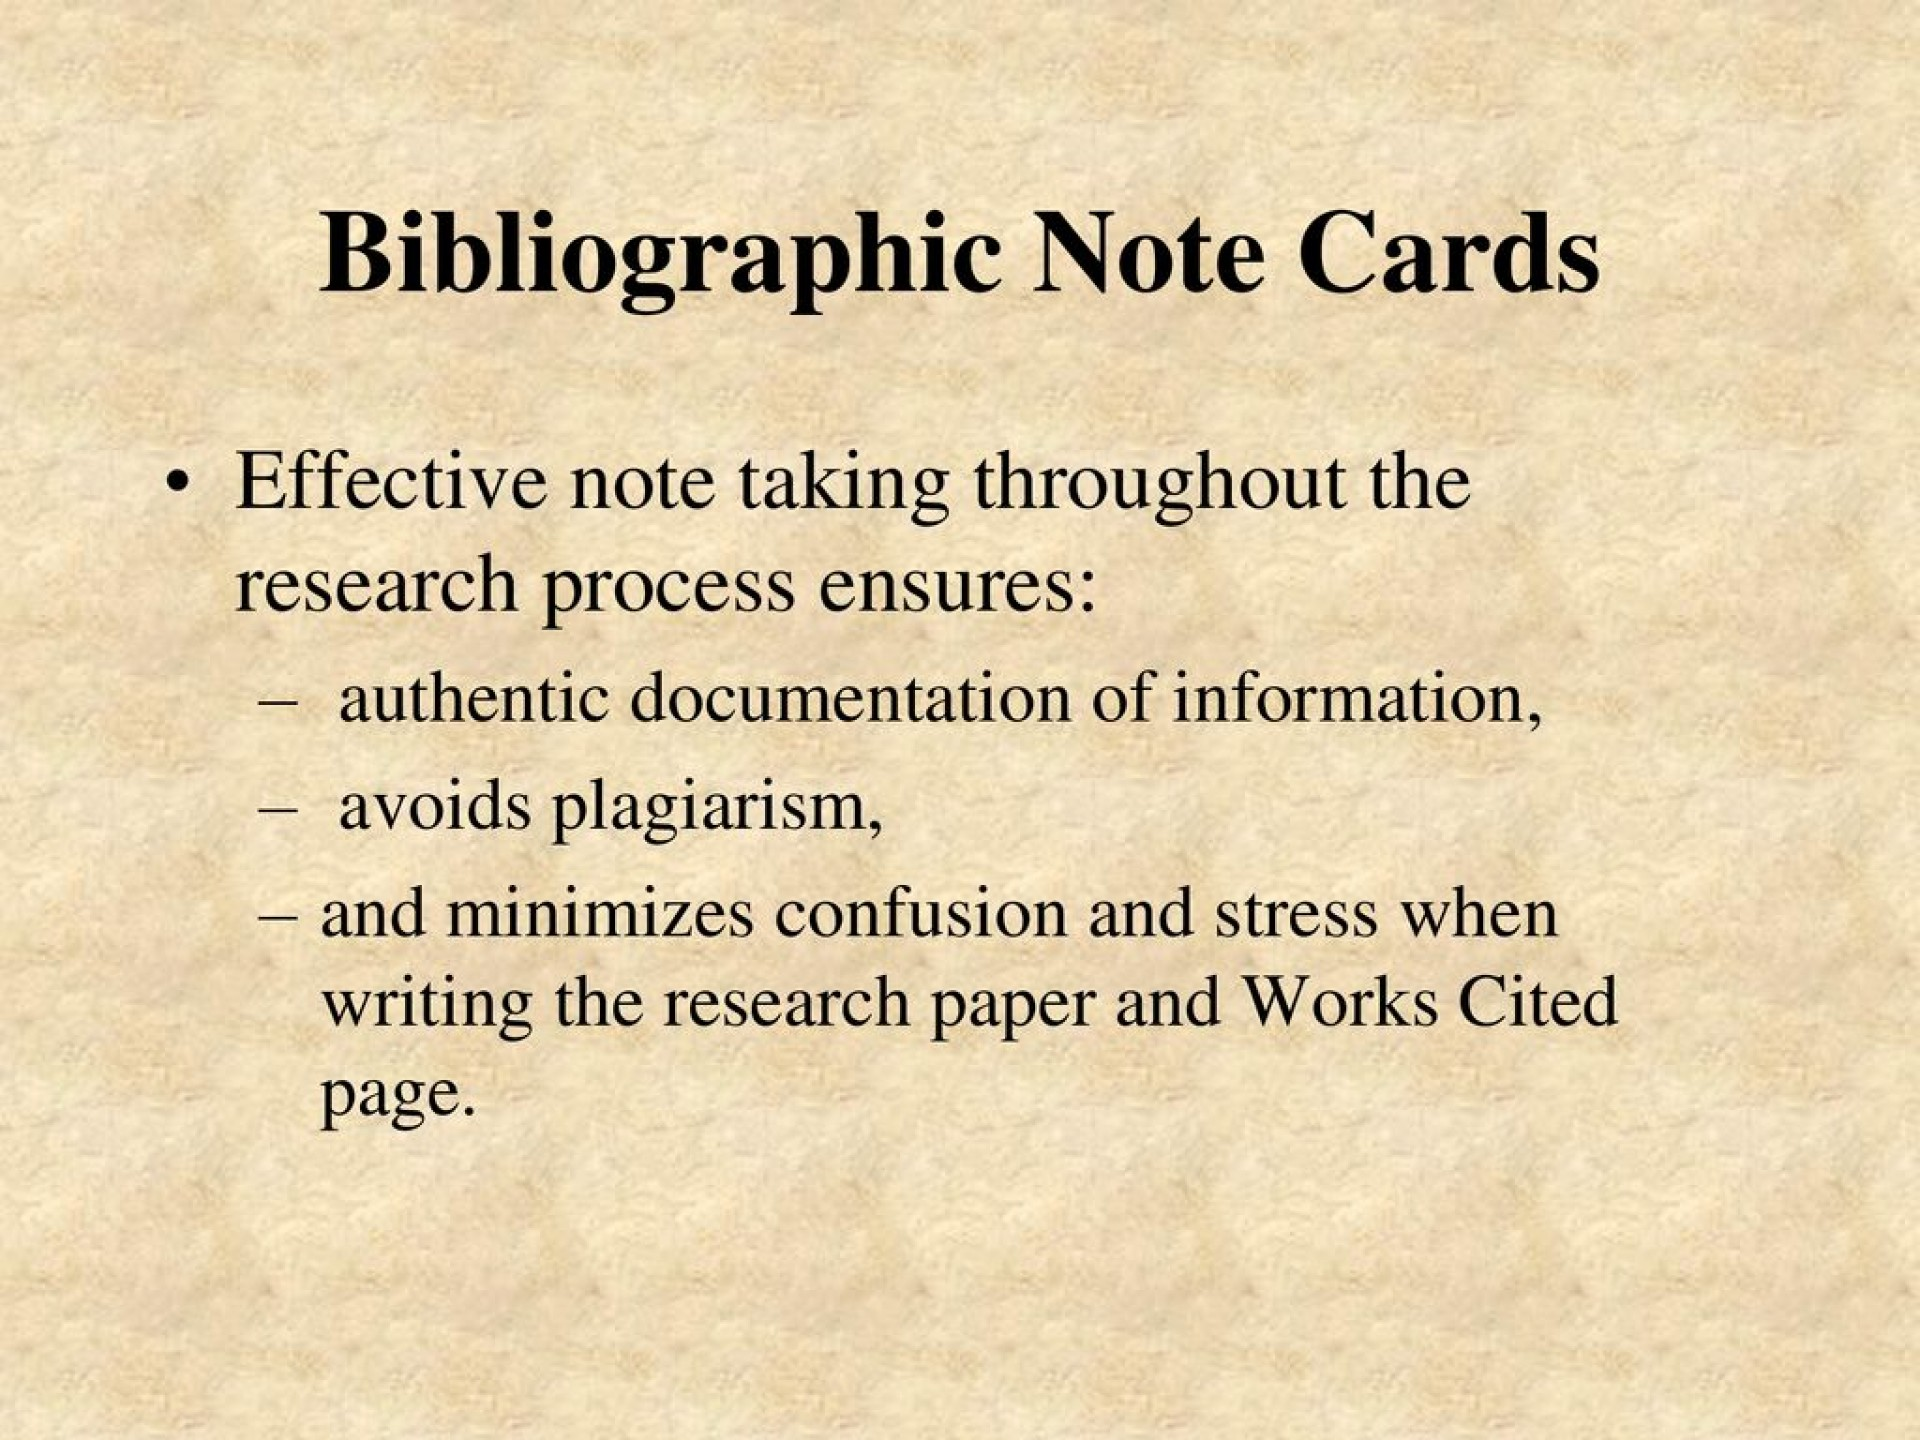 004 Bibliography Note Cards For Research Paper Magnificent 1920